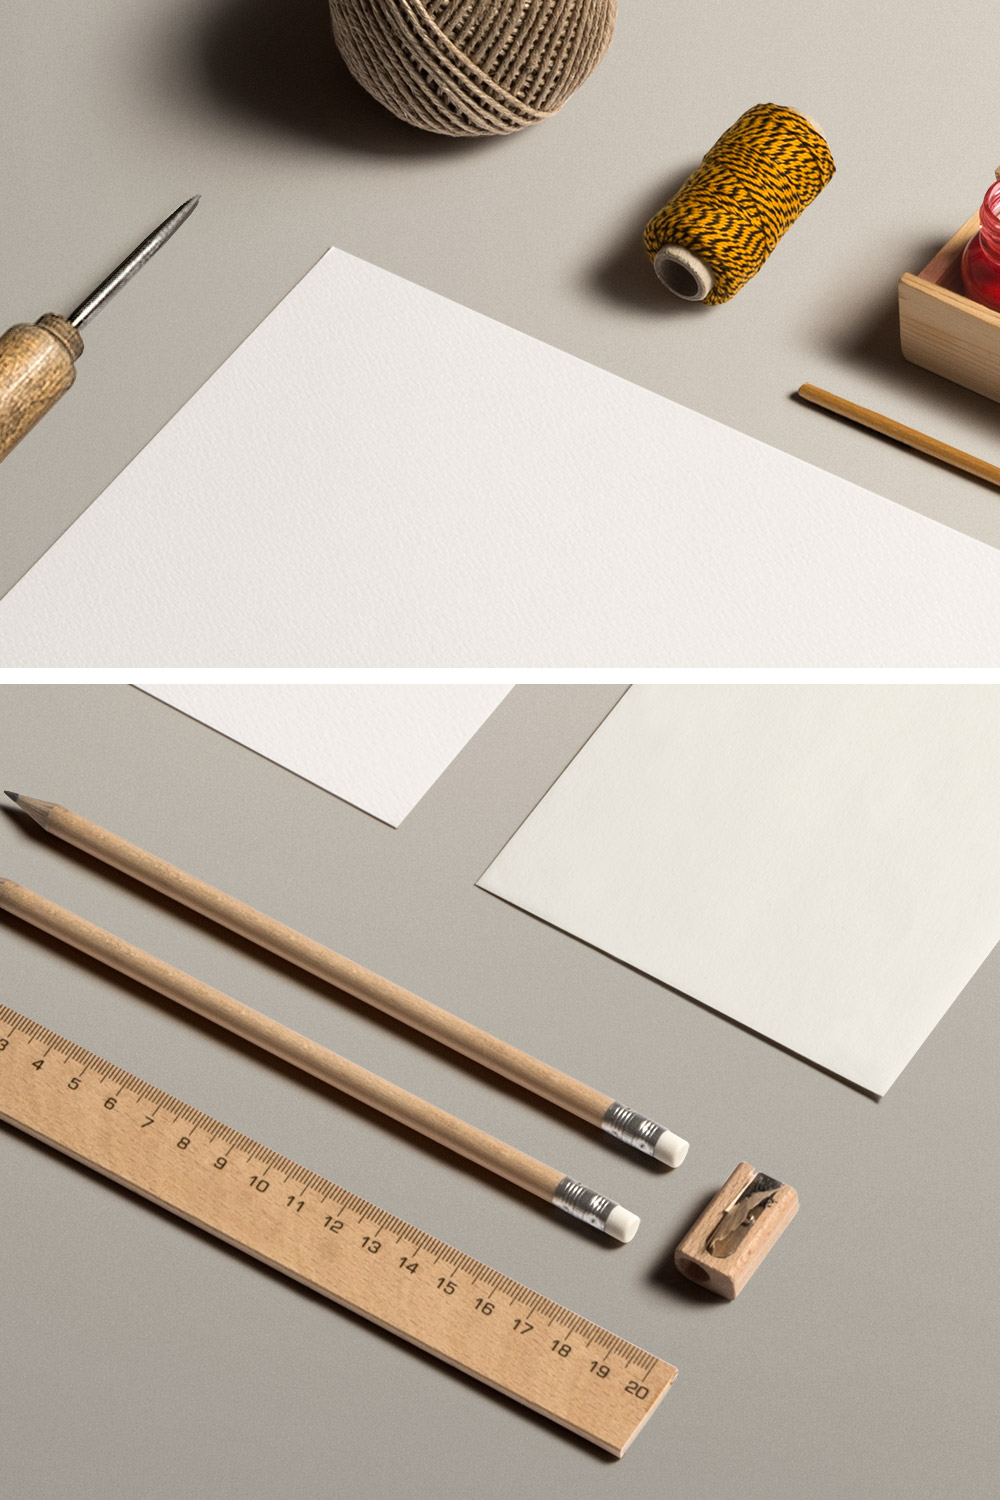 stationery-mockup-art-craft